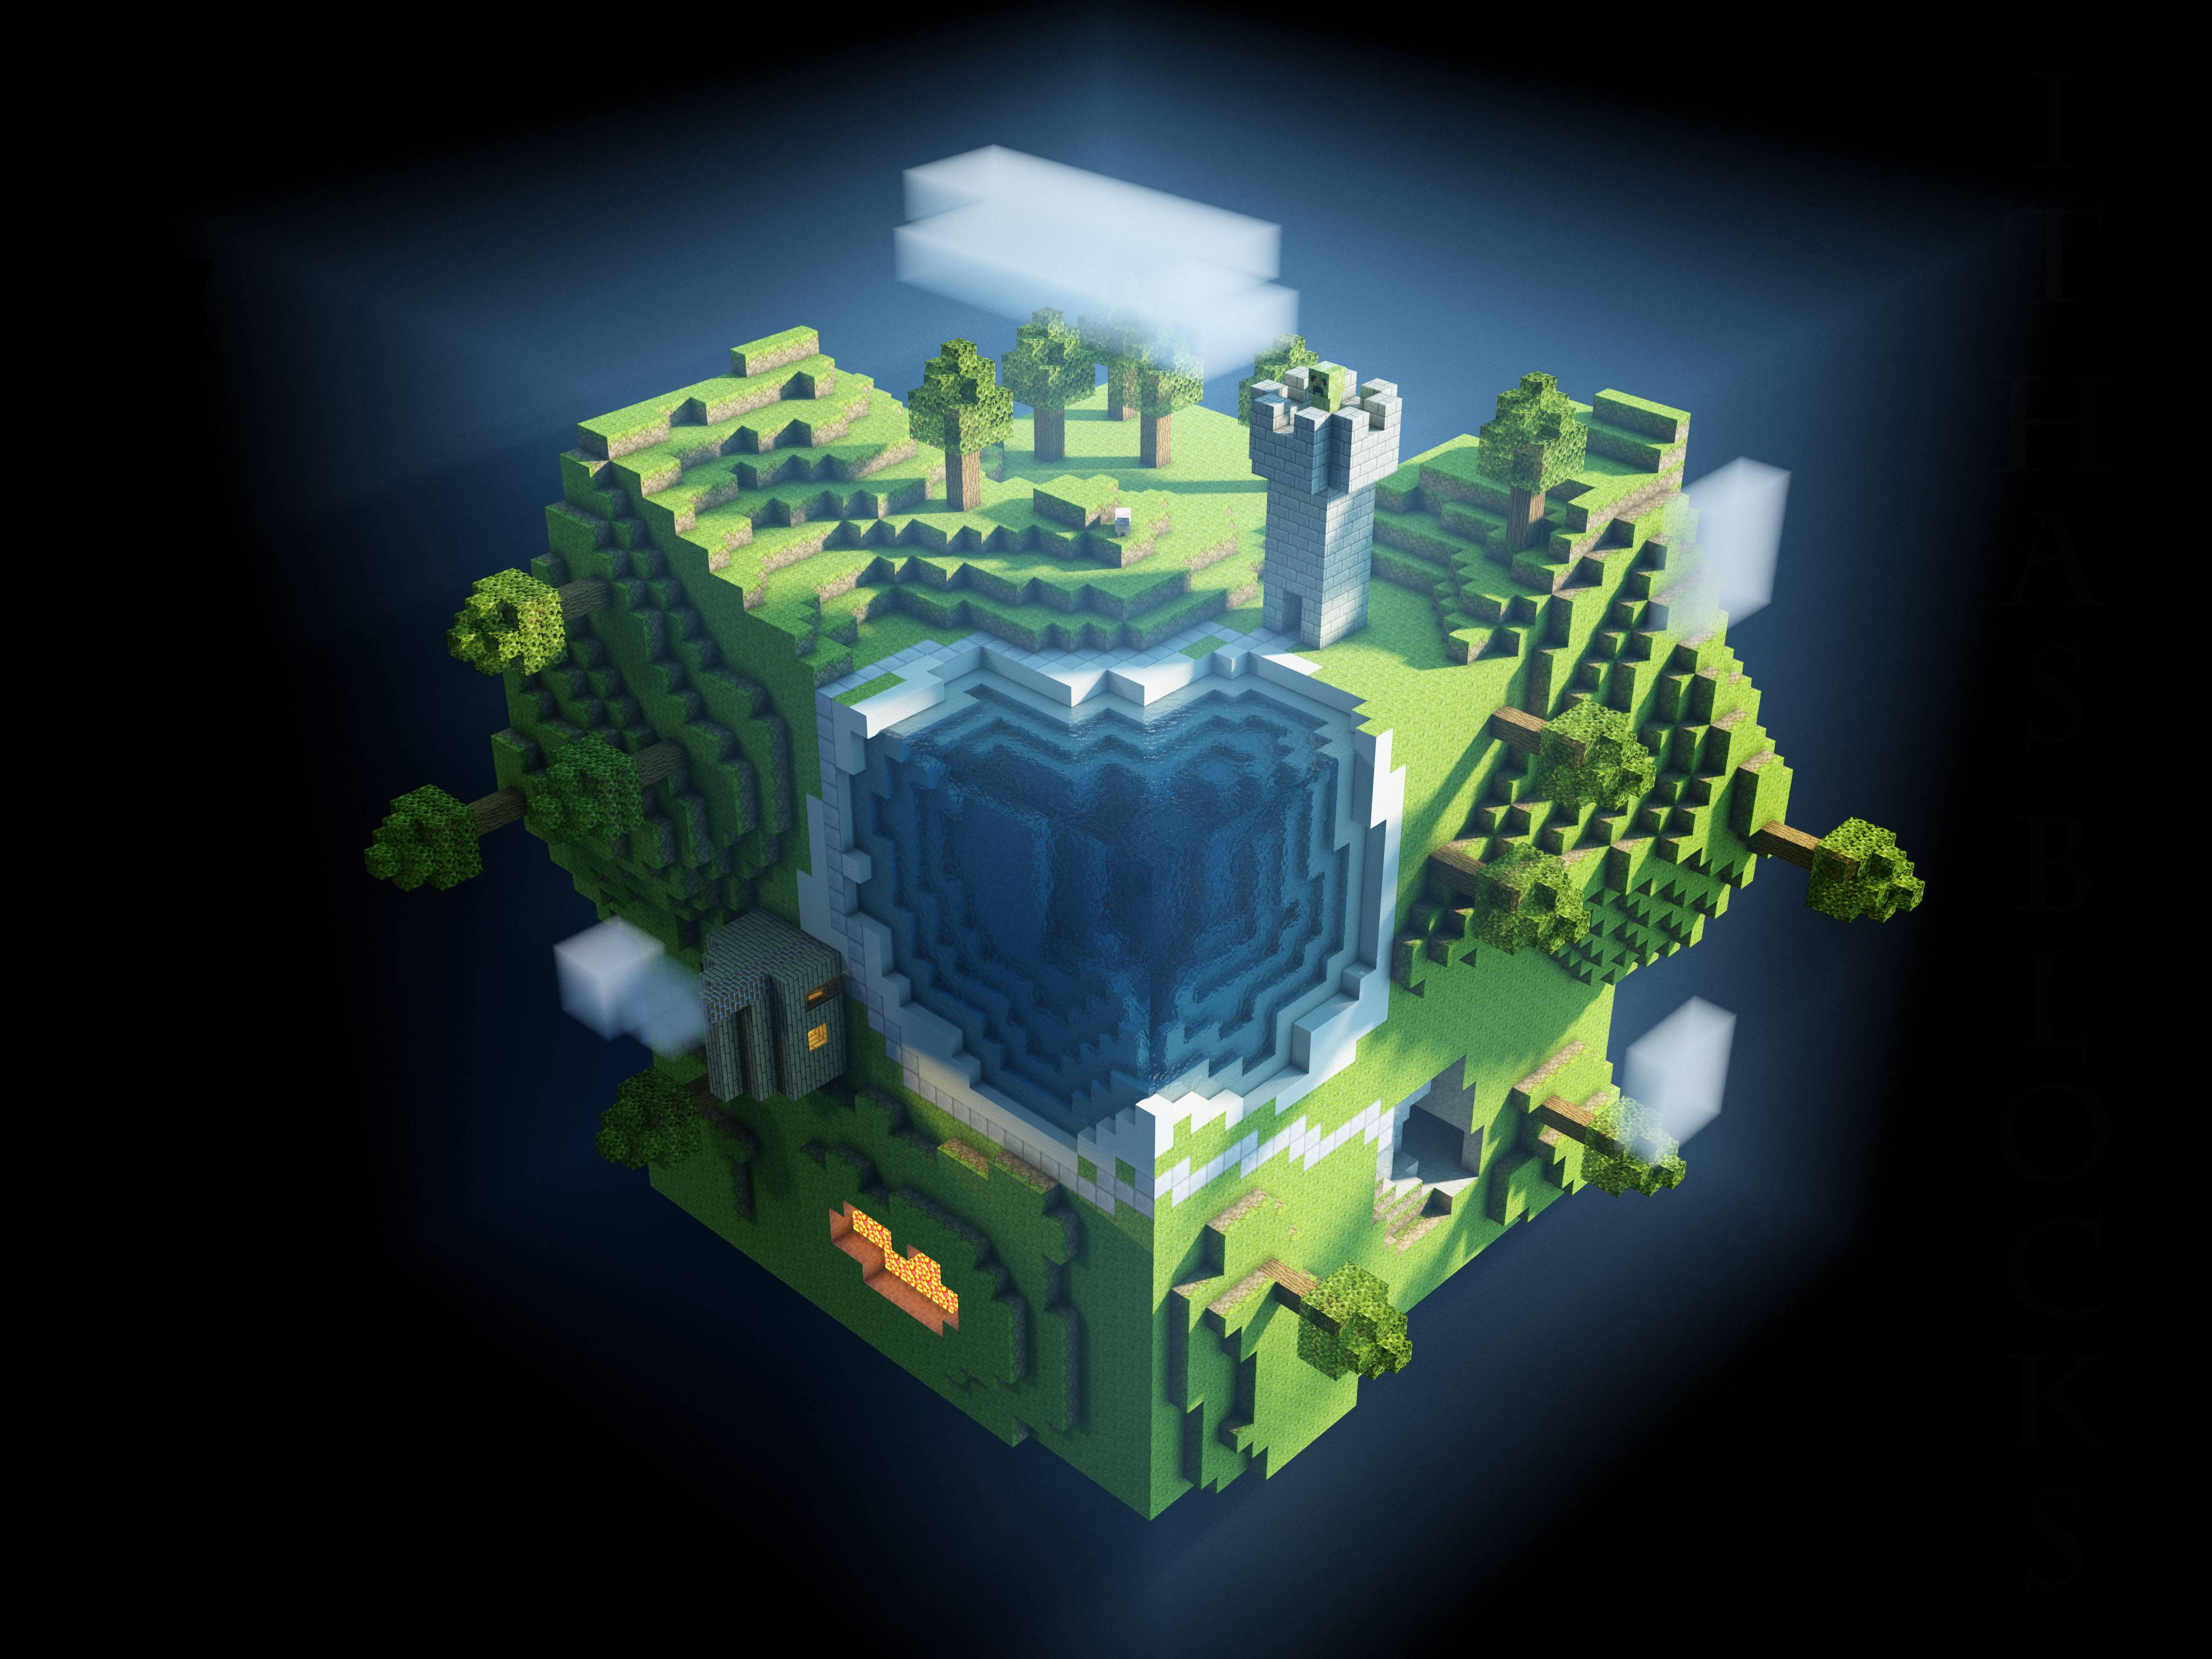 Minecraft Wallpaper 25 1080p 1920x1080 HD For